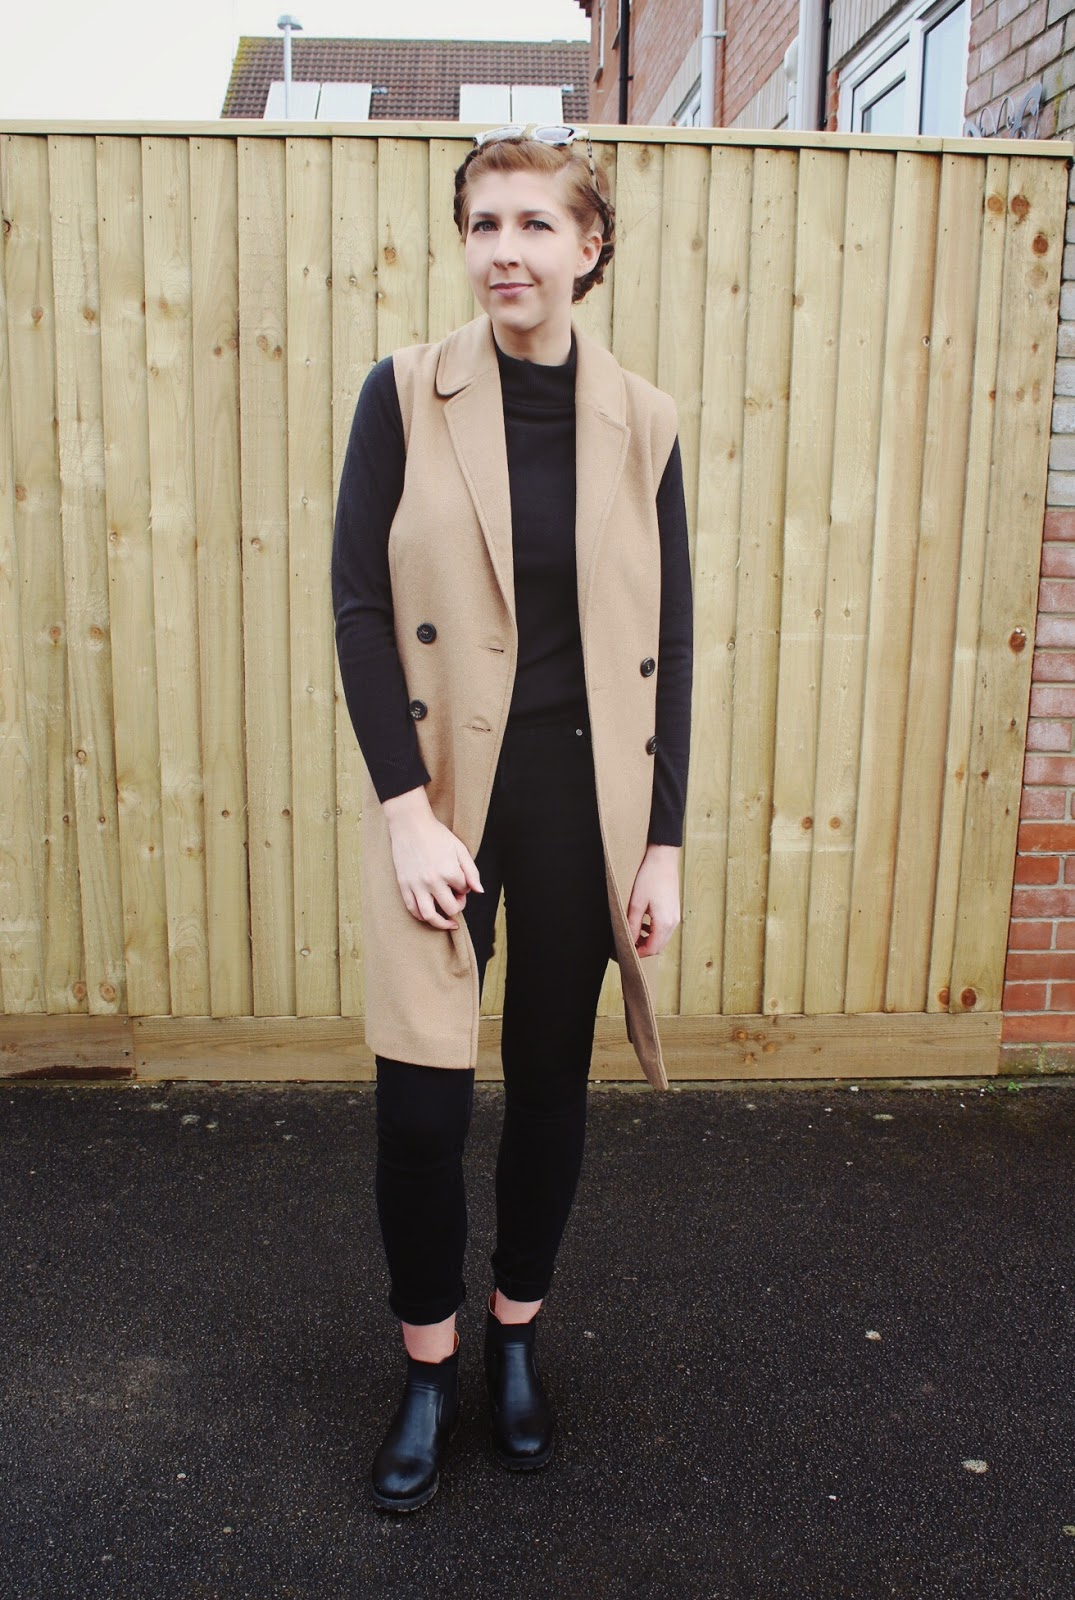 asseenonme, asos, newlook, sleevelessjacket, cameljacket, primark, rollneck, blackskinnyjeans, halcyonvelvet, wiw, whatimwearing, lotd, lookoftheday, ootd, outfitoftheday, fashionbloggers, fashion, fbloggers, fblogger